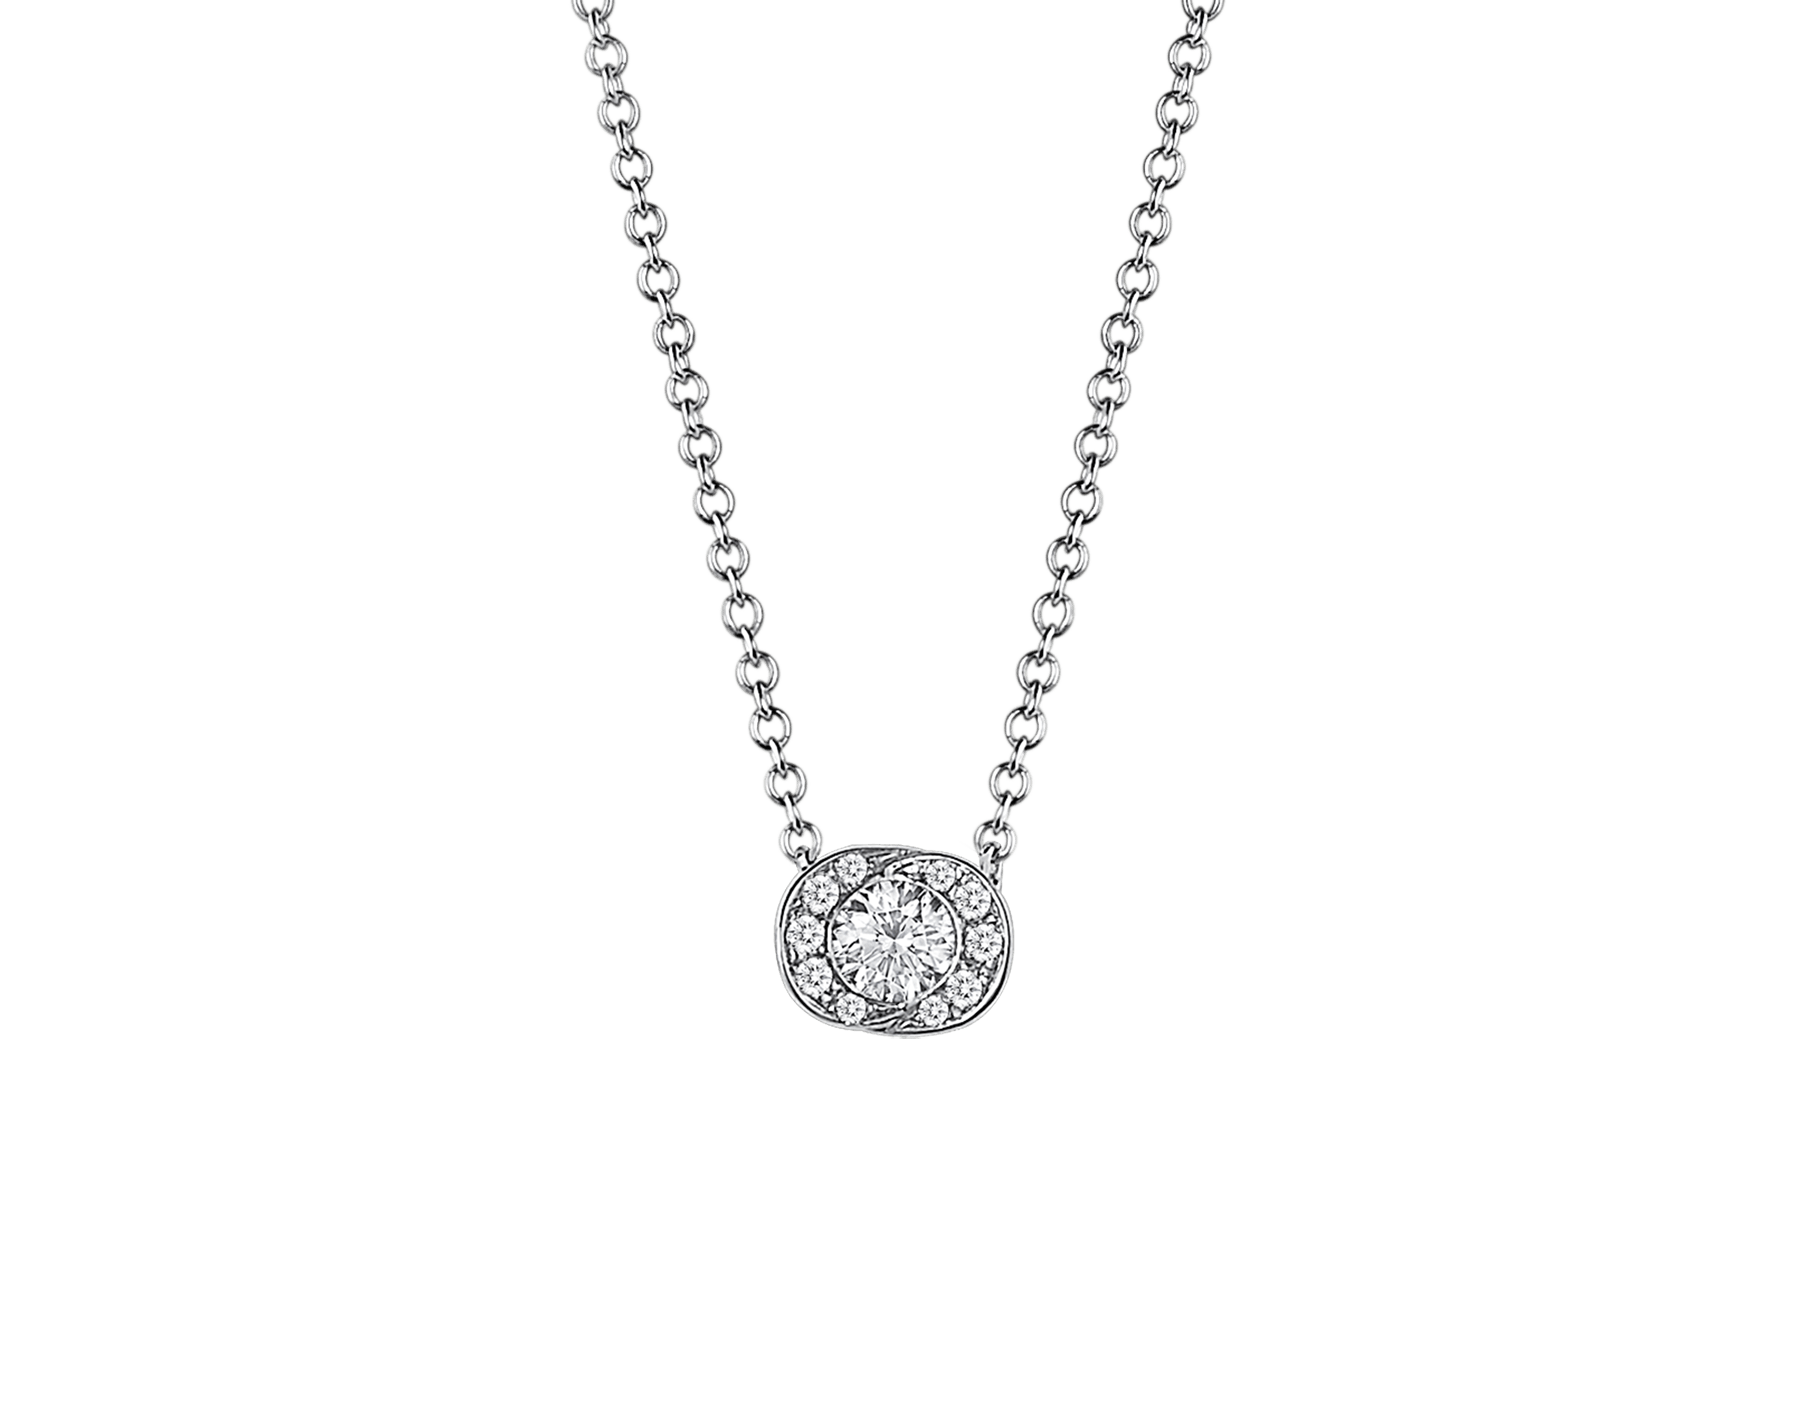 Incontro d'Amore necklace with 18 kt white gold chain, 18 kt white gold pendant set with a central diamond (0.10 ct) and pavé diamonds. 355249 image 1